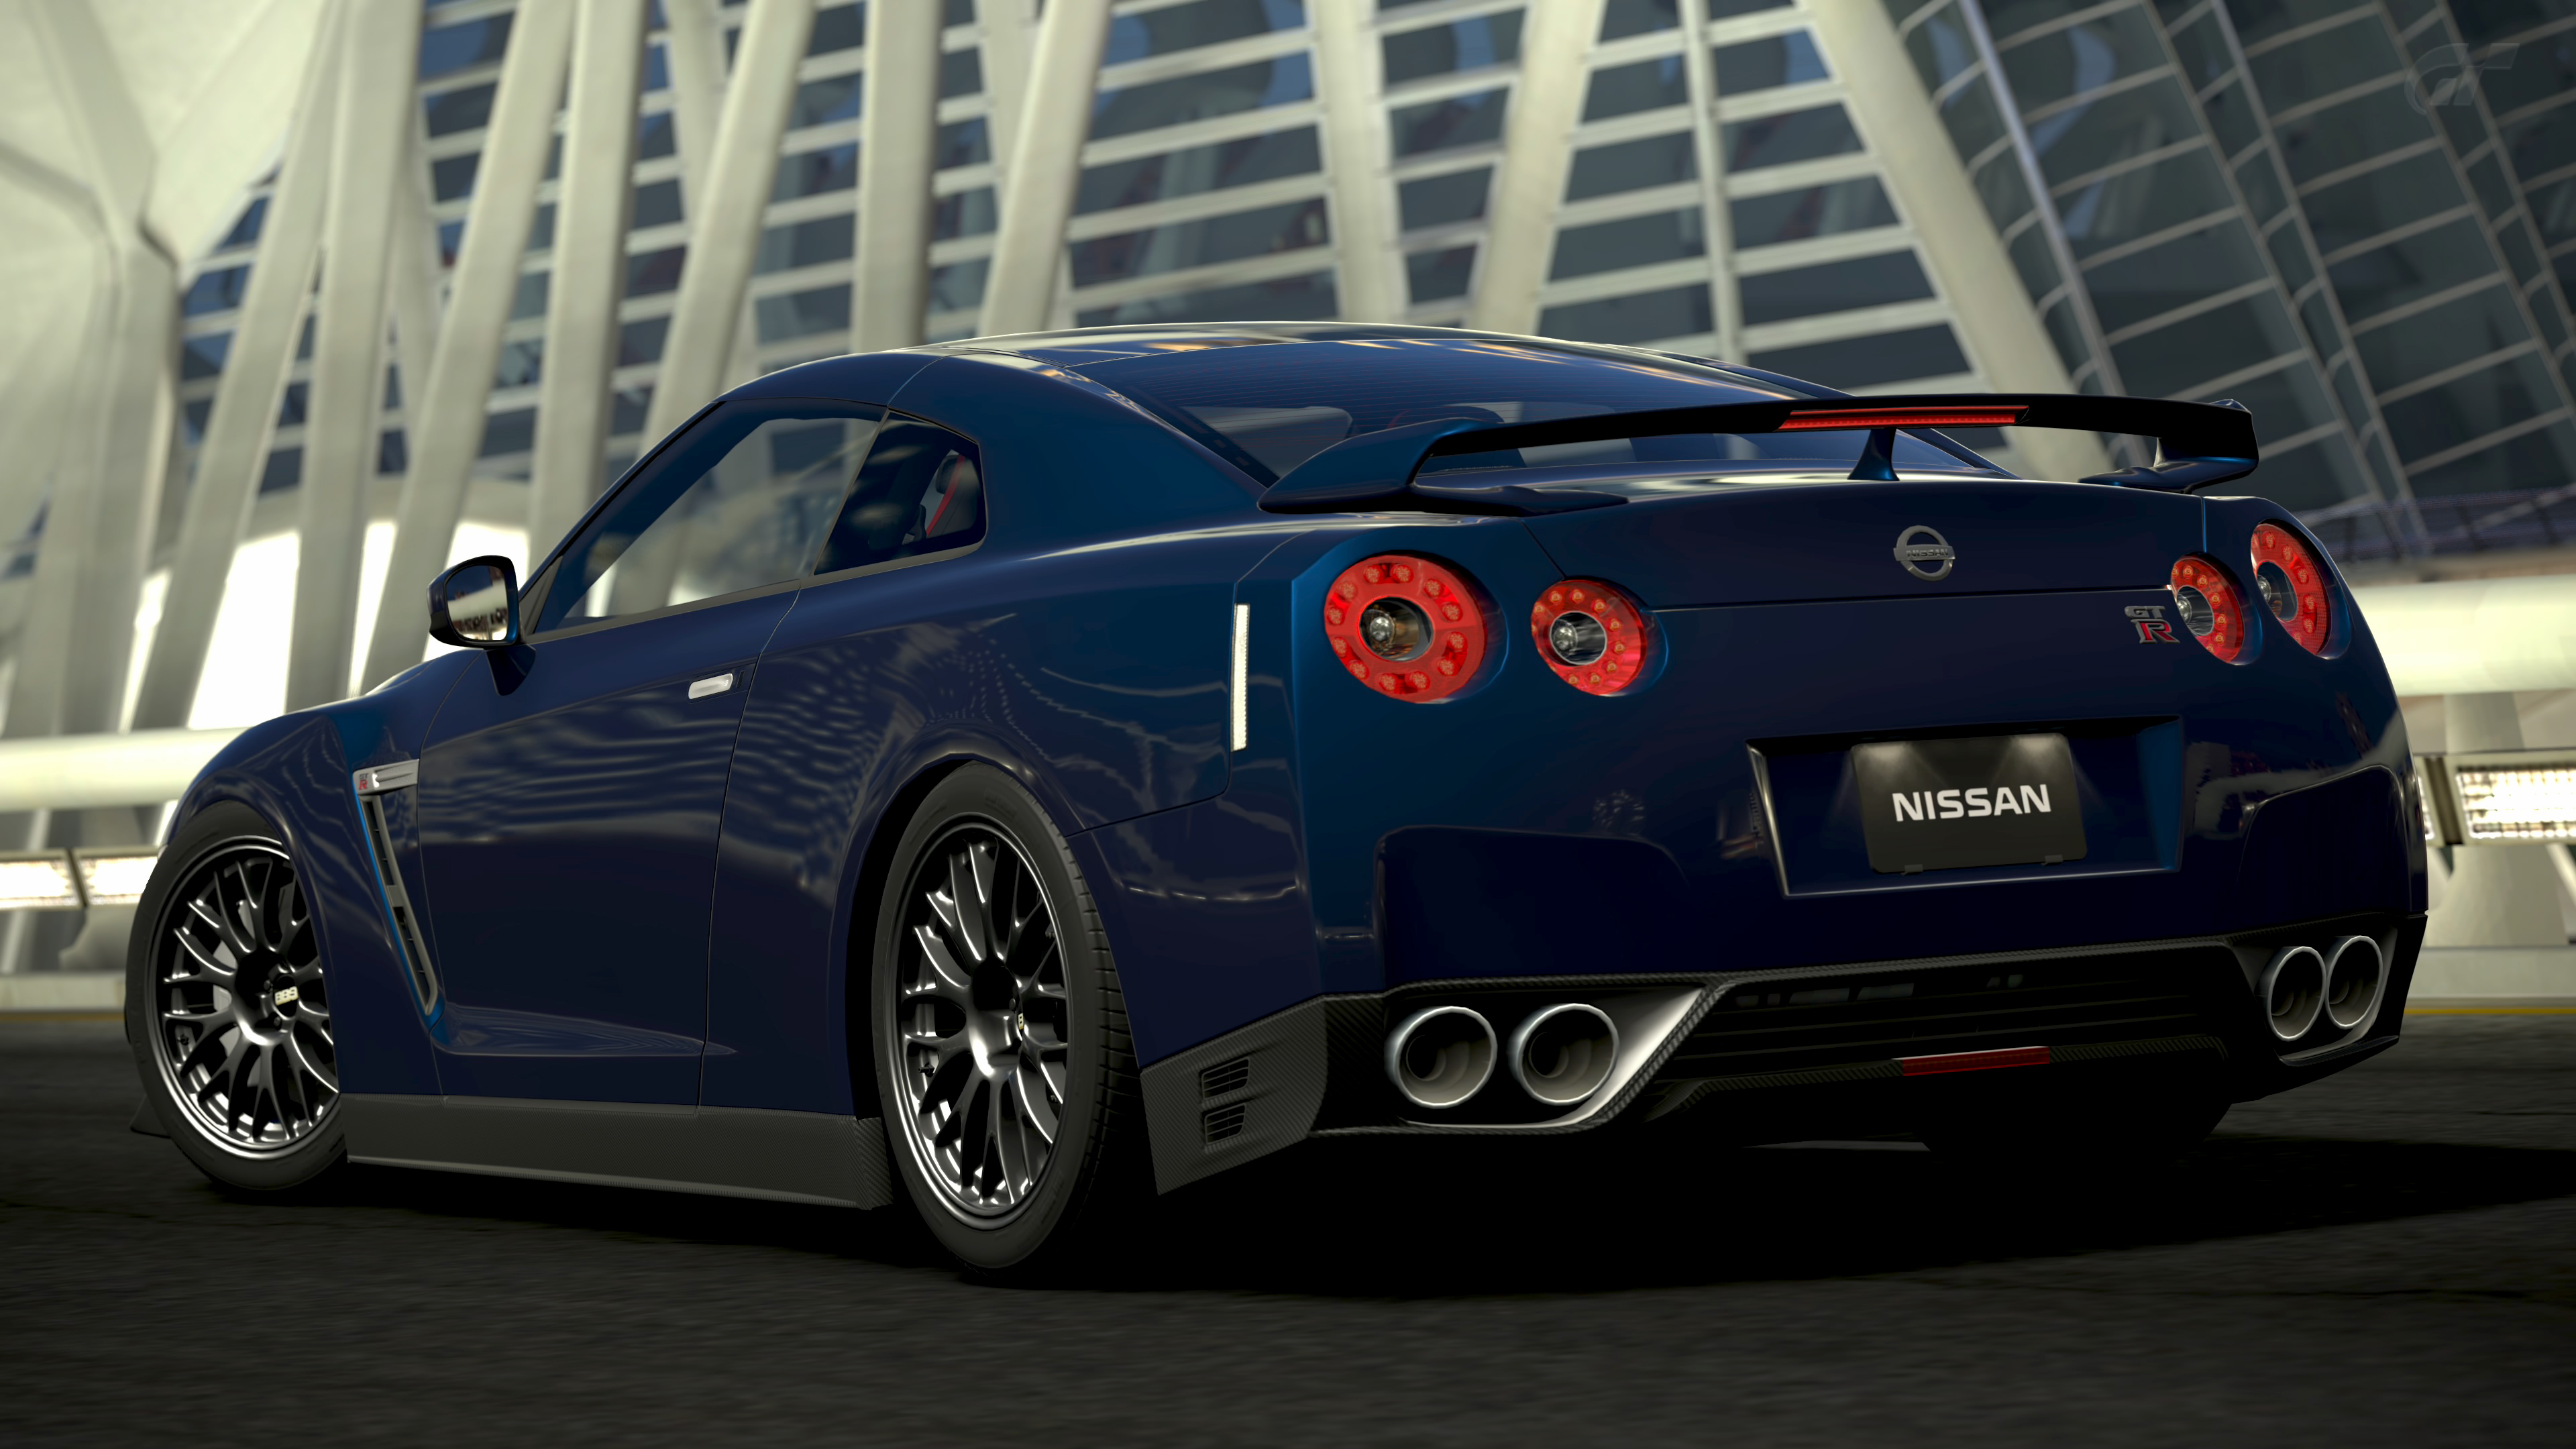 nissan gt r black edition gran turismo 6 by vertualissimo on deviantart. Black Bedroom Furniture Sets. Home Design Ideas